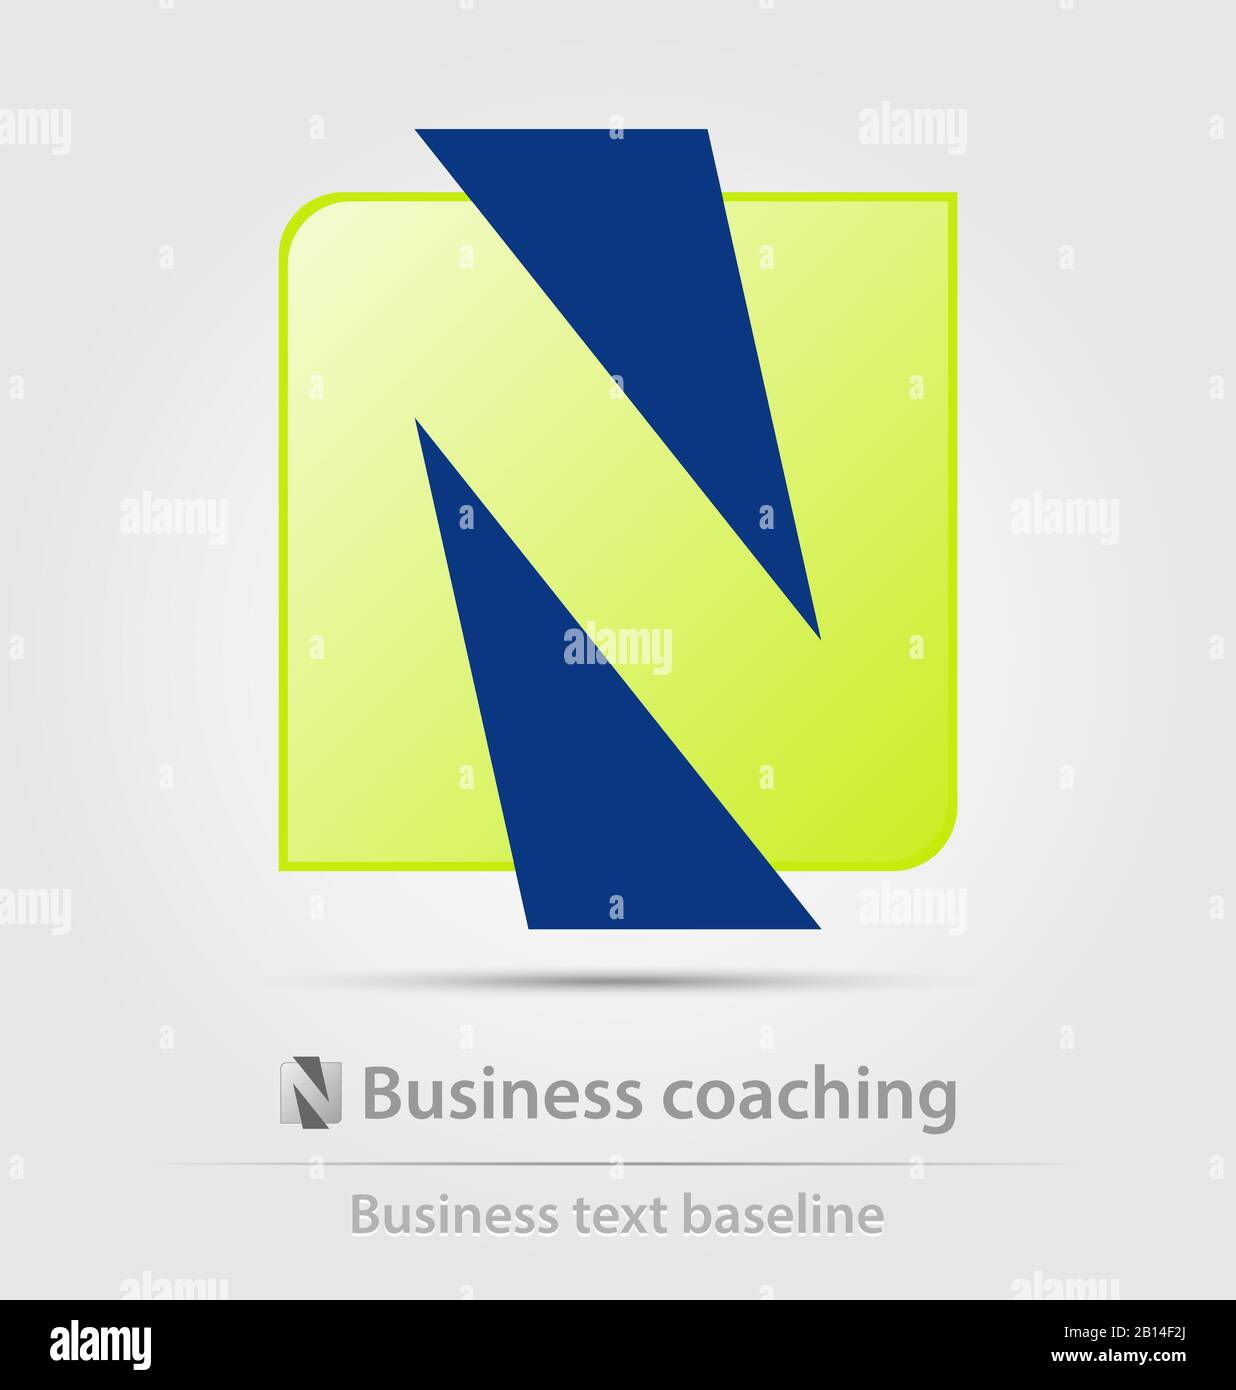 Business Coaching Business Icon For Creative Design Tasks Stock Vector Image Art Alamy